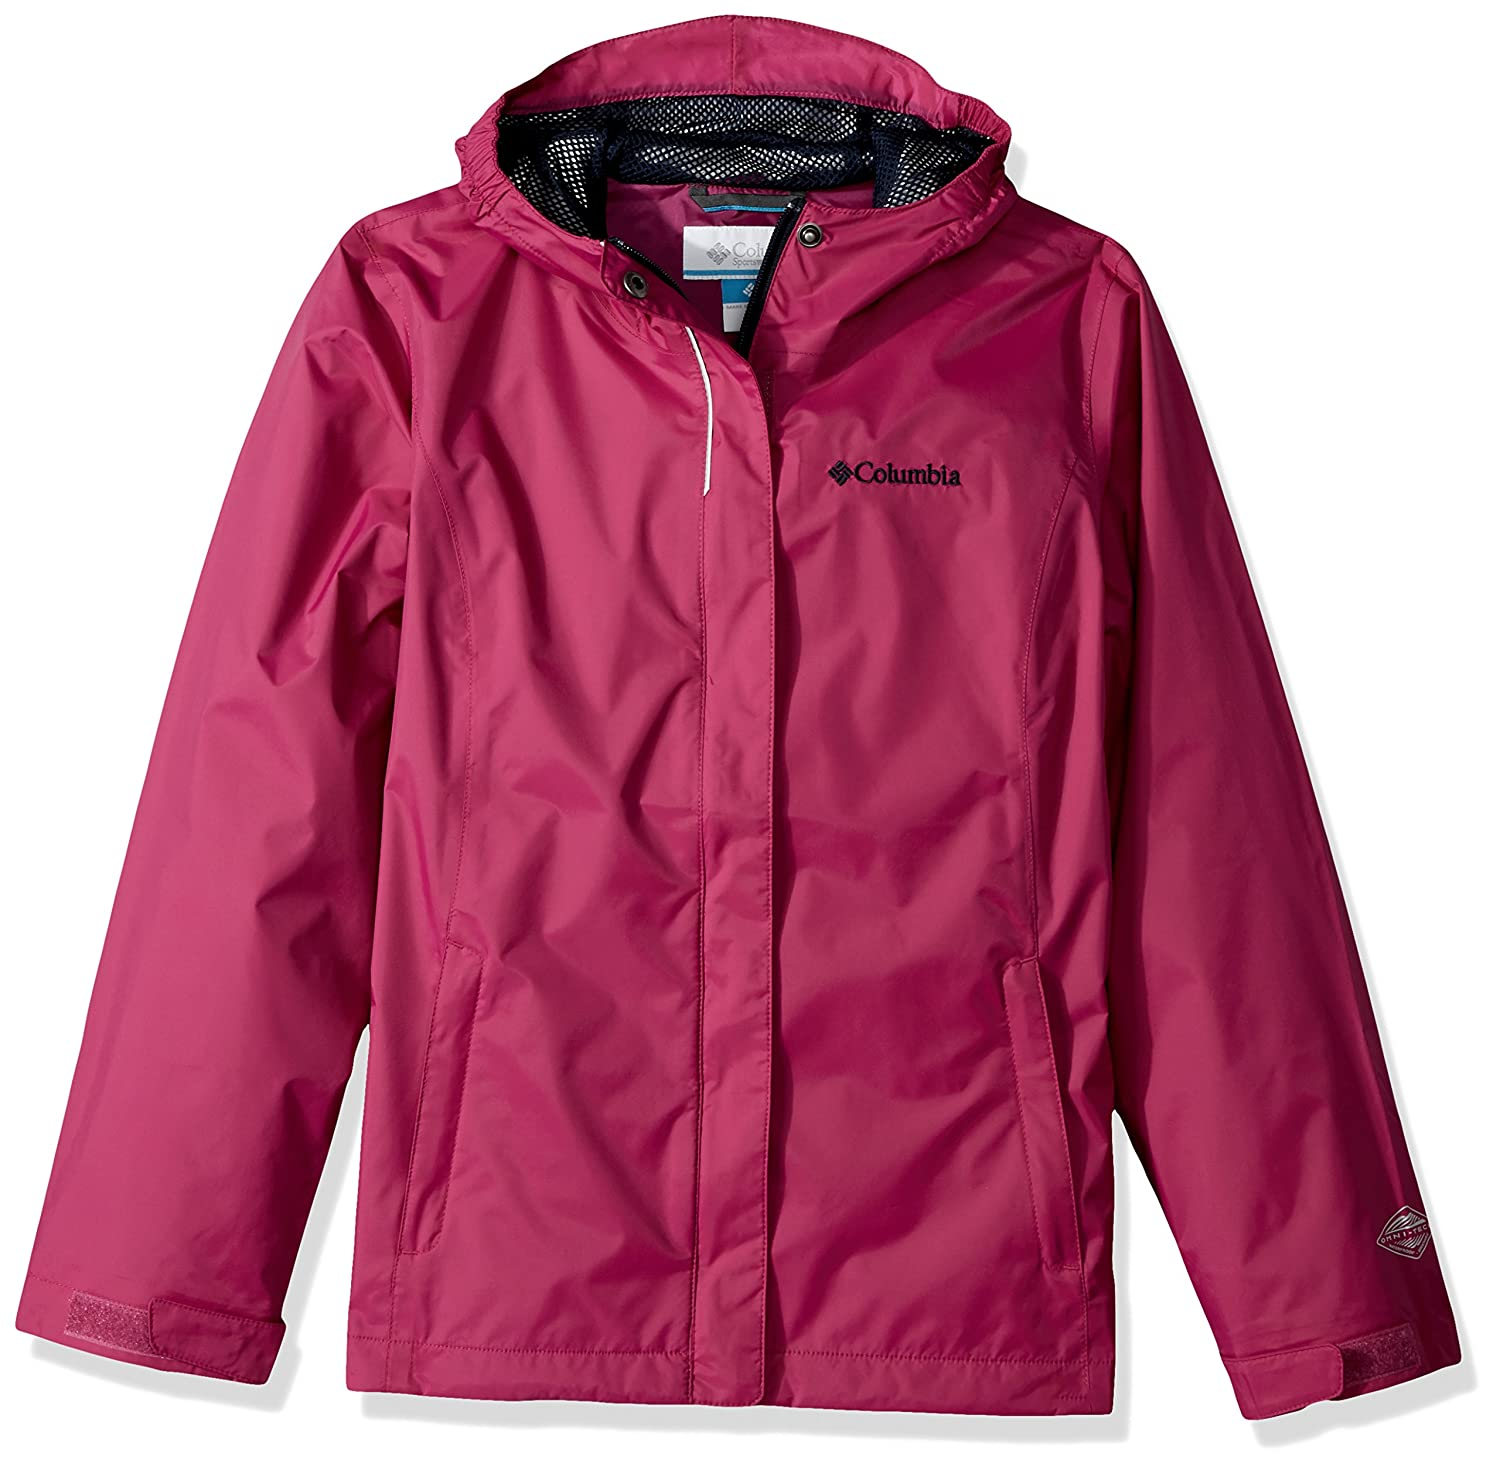 510466ae2 Top 10 wholesale Girls Waterproof Jacket - Chinabrands.com